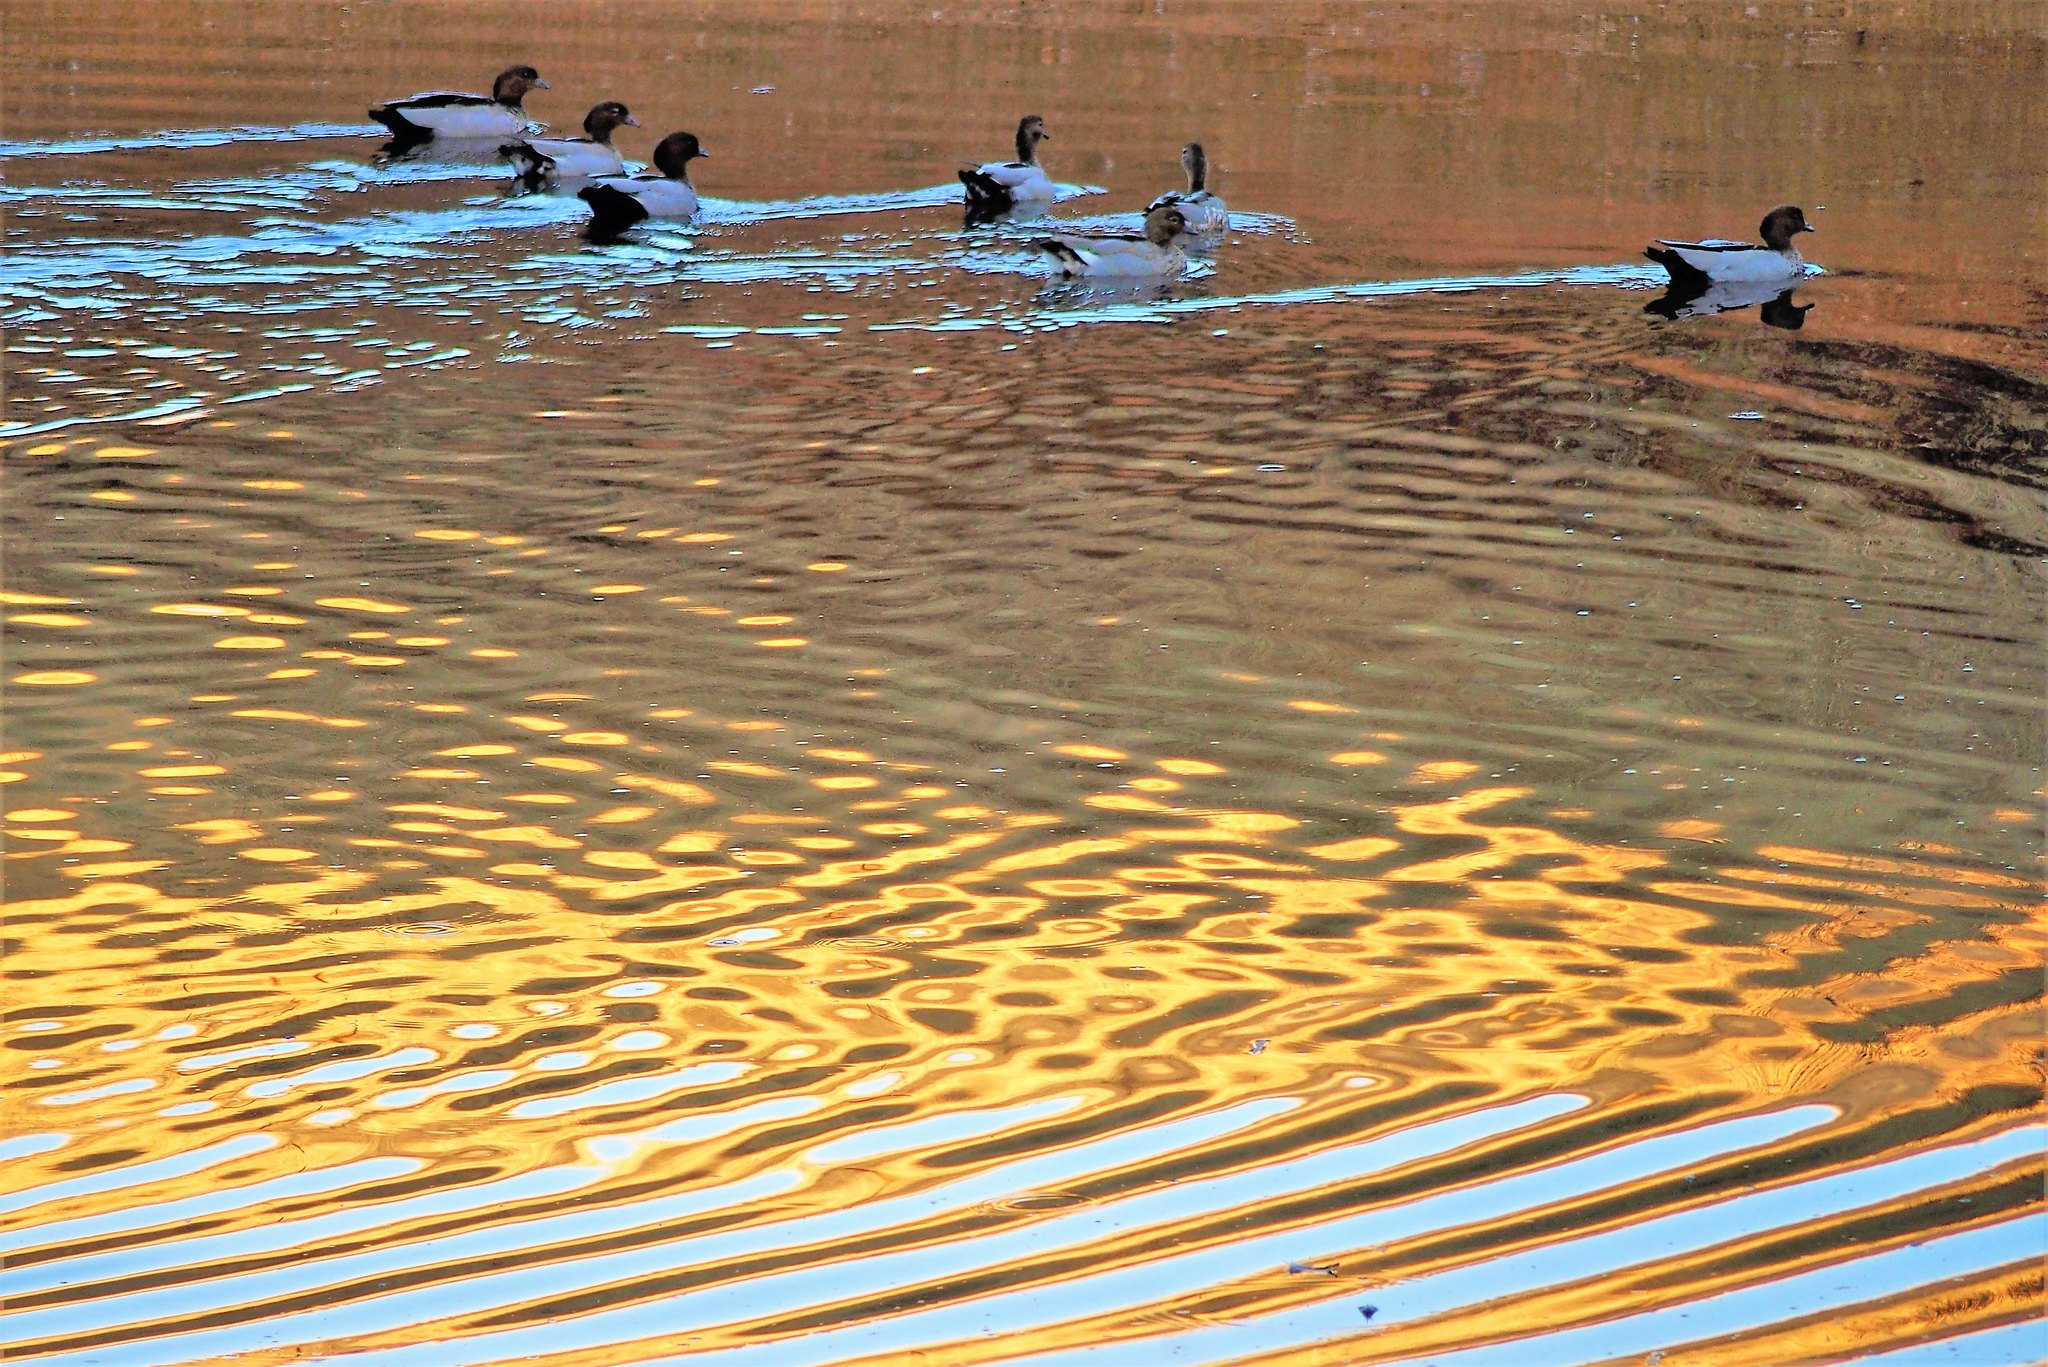 Wood Ducks and Water, Summer in South Australia